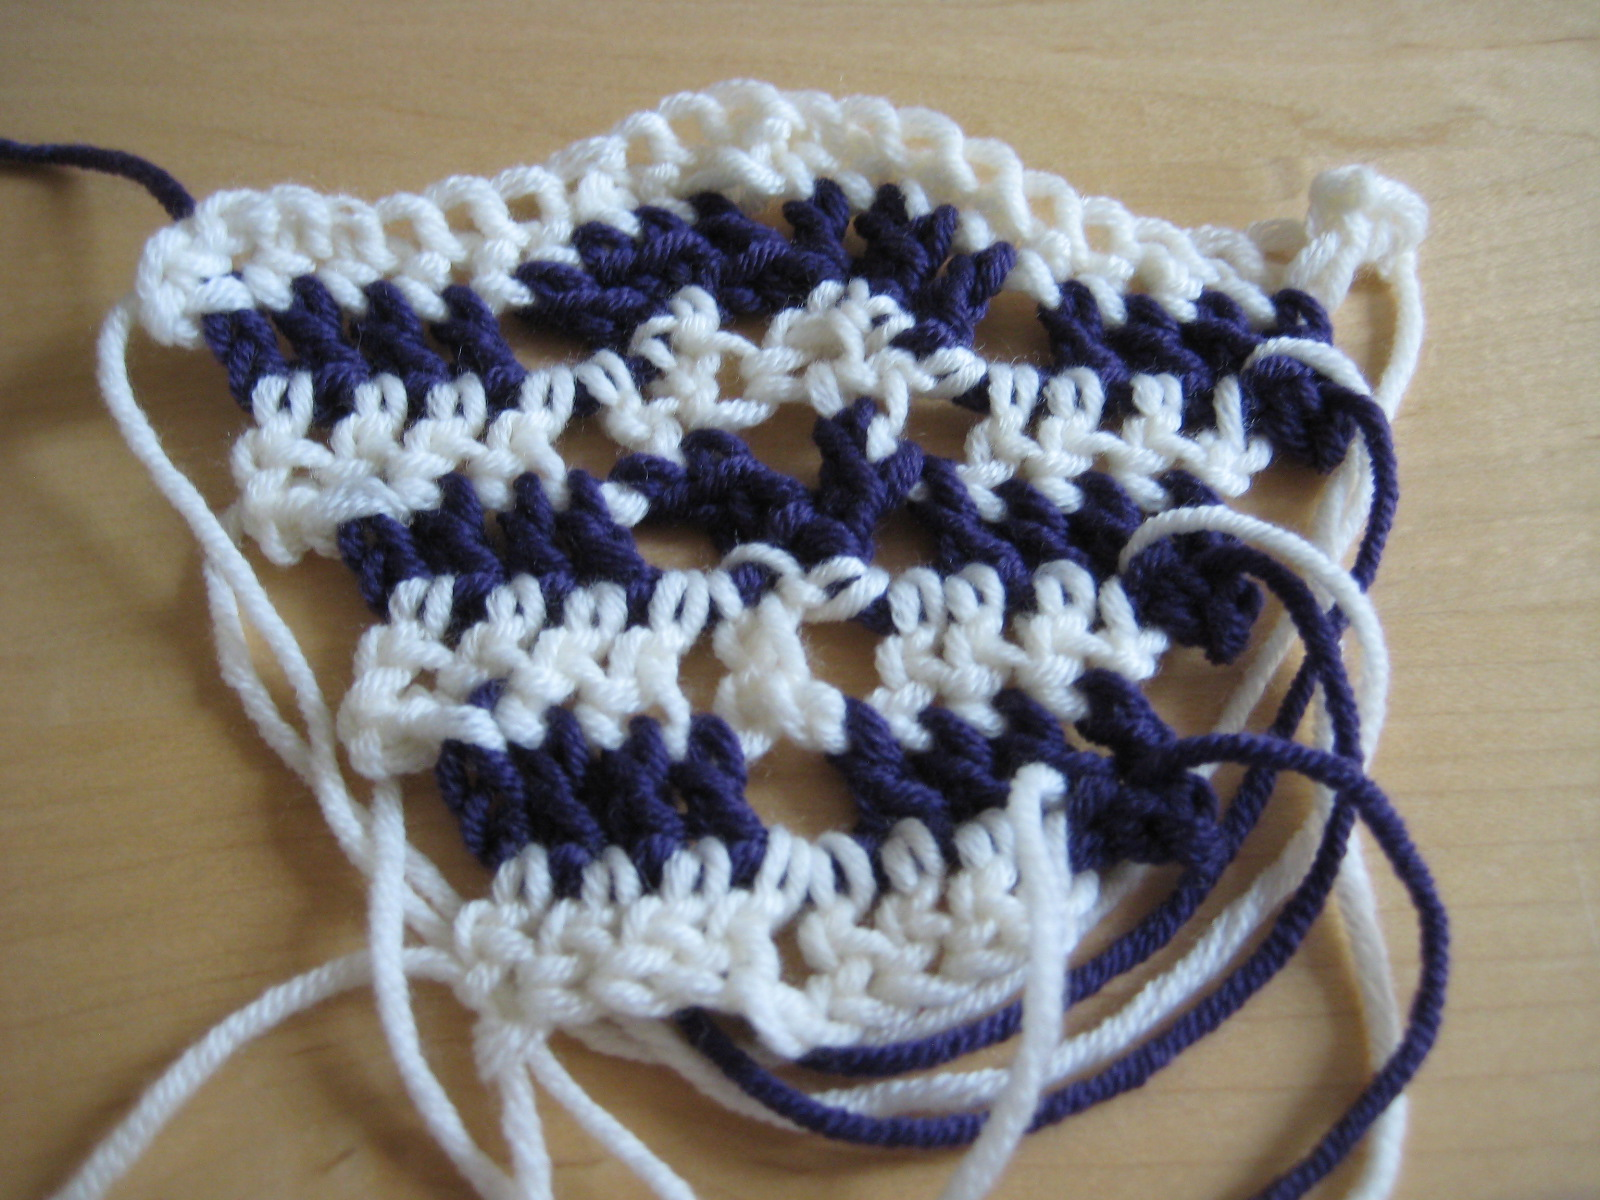 How to design crochet patterns part 3a shaping in crochet stitch make a swatch decreasing by an entire stitch pattern over a number of rows bankloansurffo Image collections